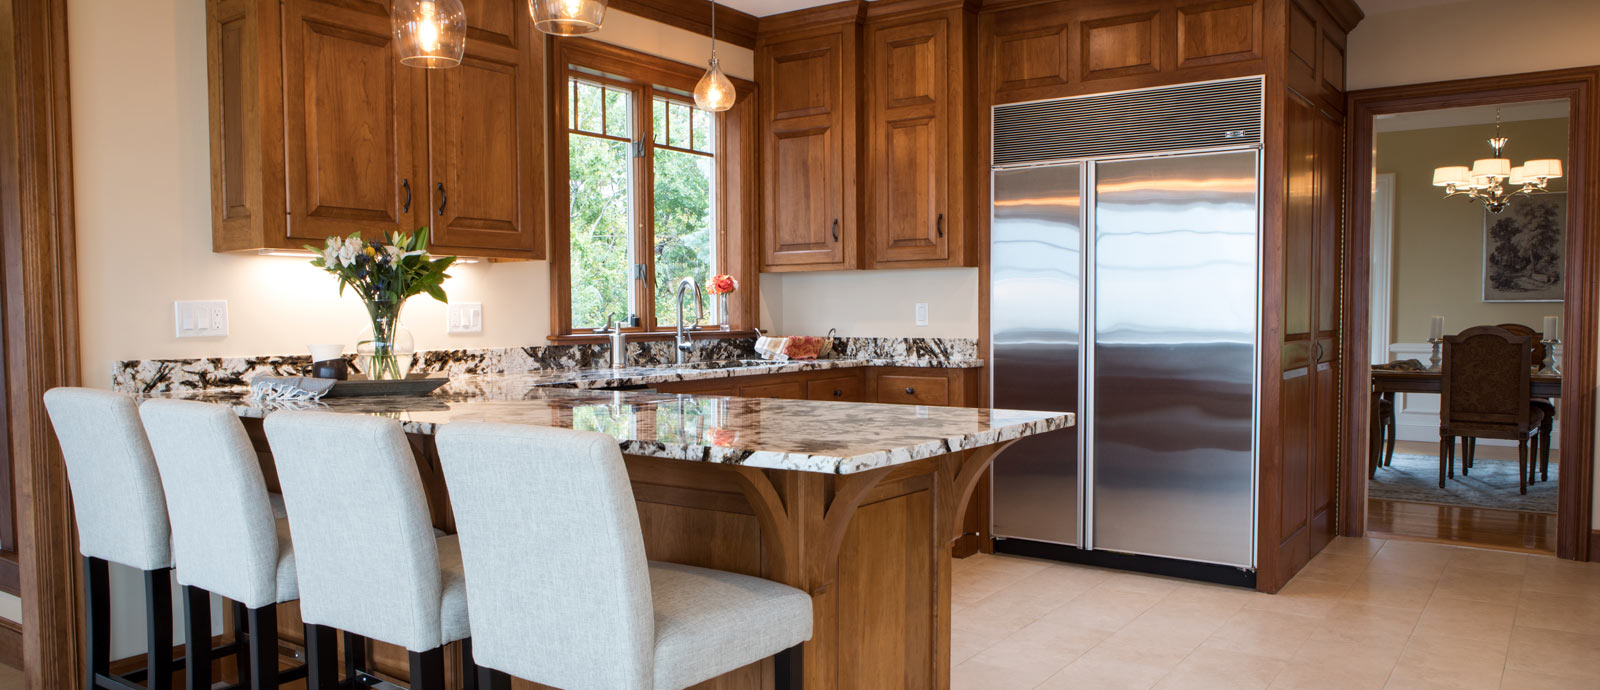 NH residential kitchen redesign